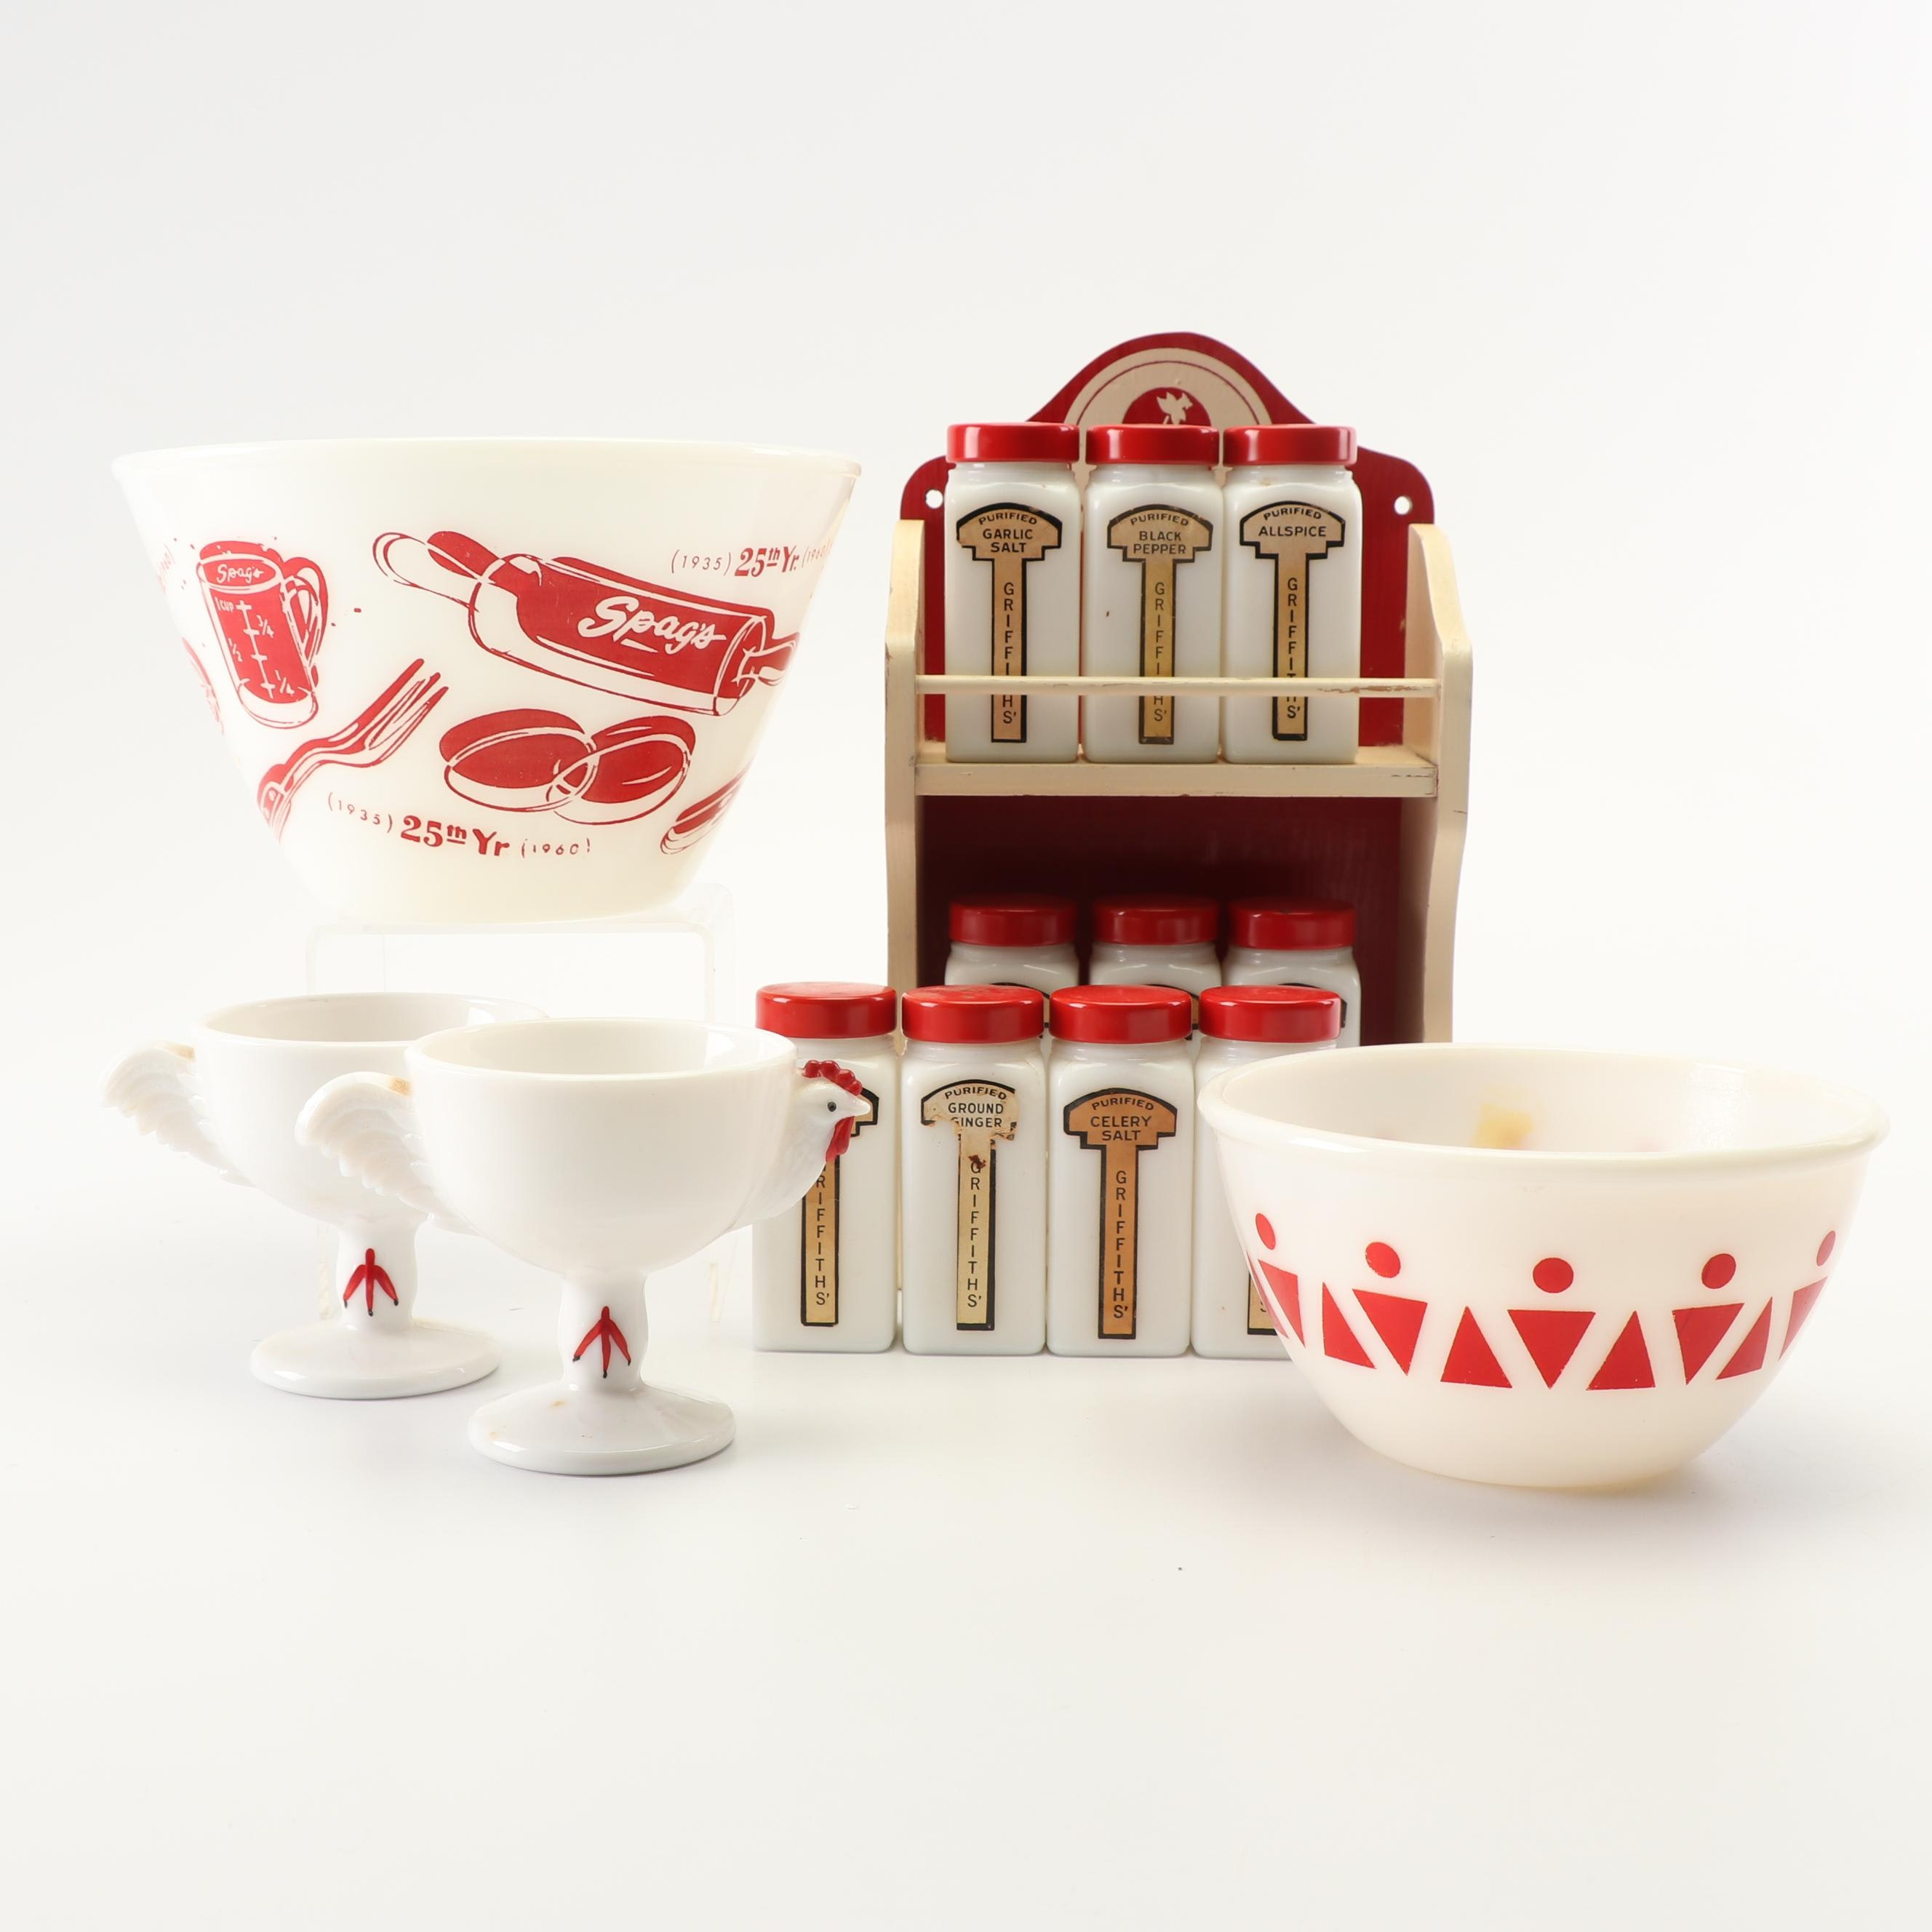 Vintage Milk Glass Custard Cups, Mixing Bowls and Spice Jars with Rack